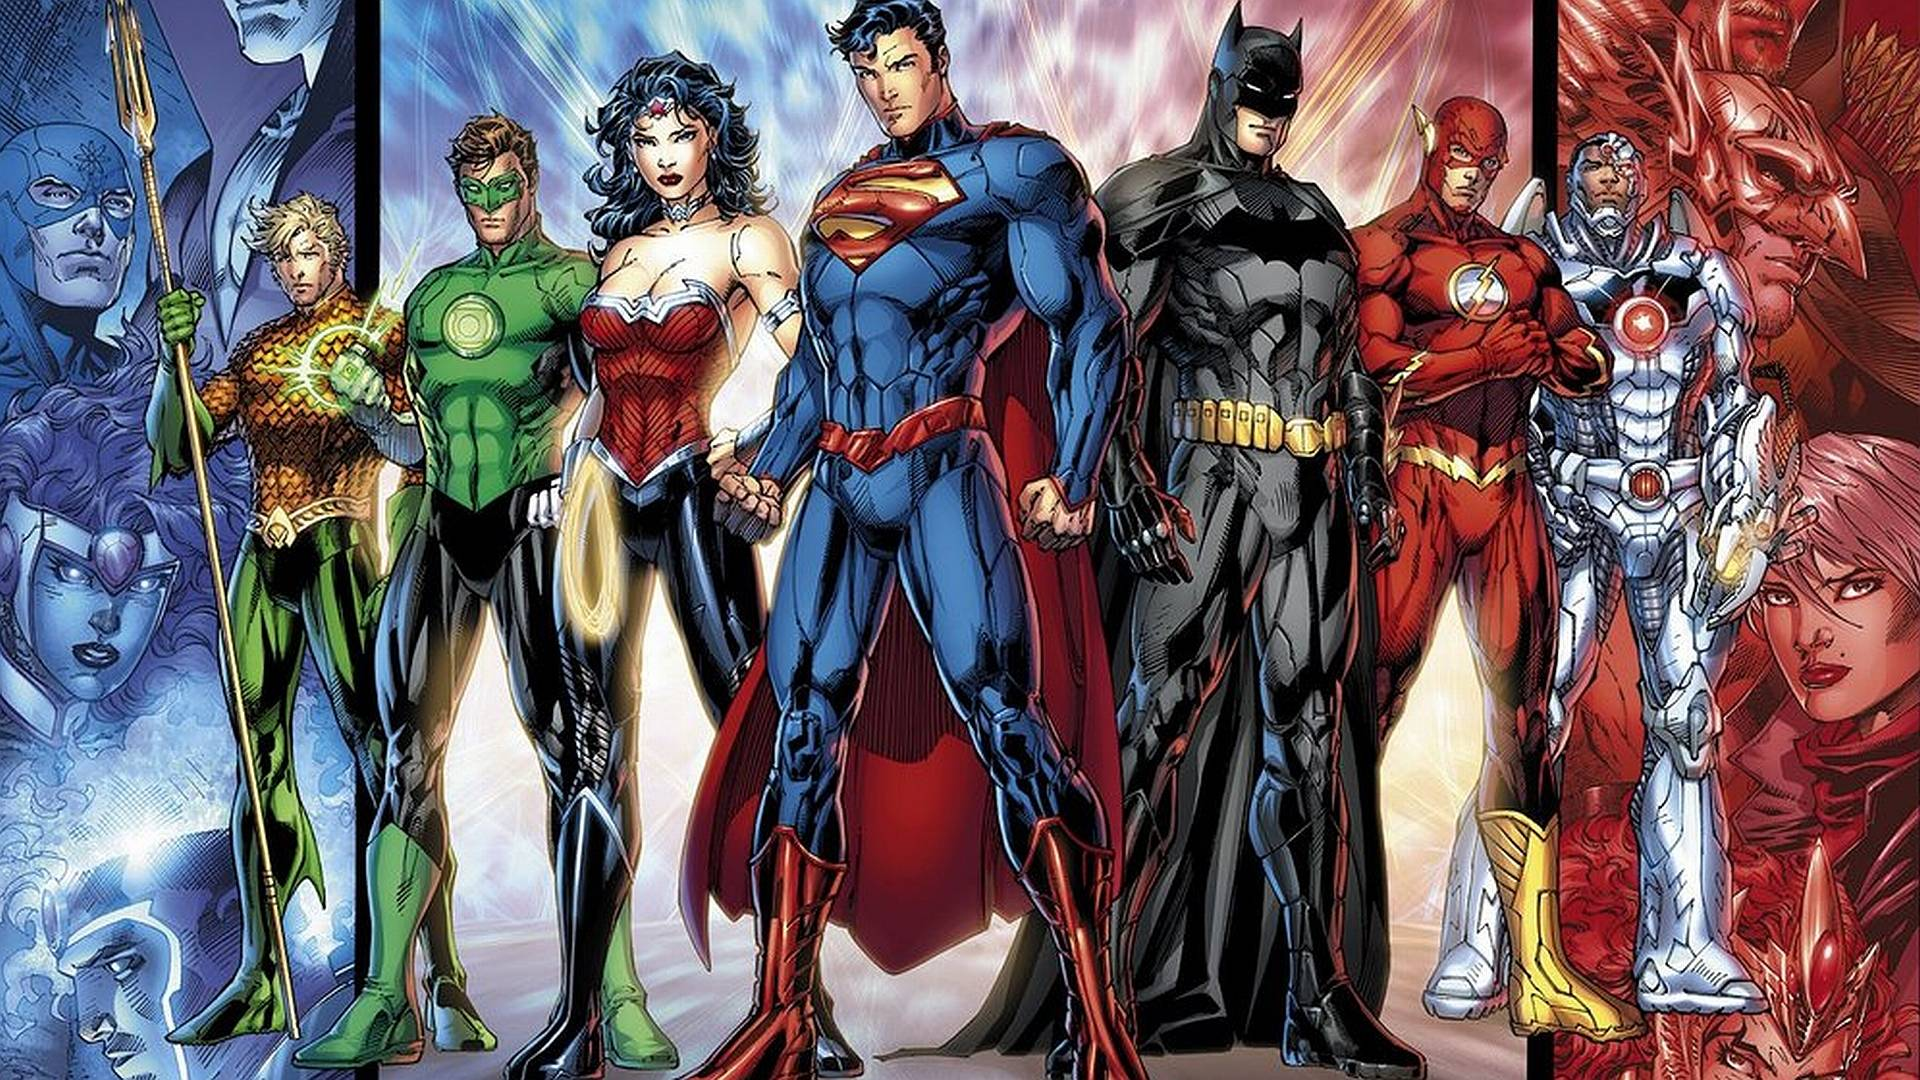 Justice League Hd Desktop Wallpapers Top Free Justice League Hd